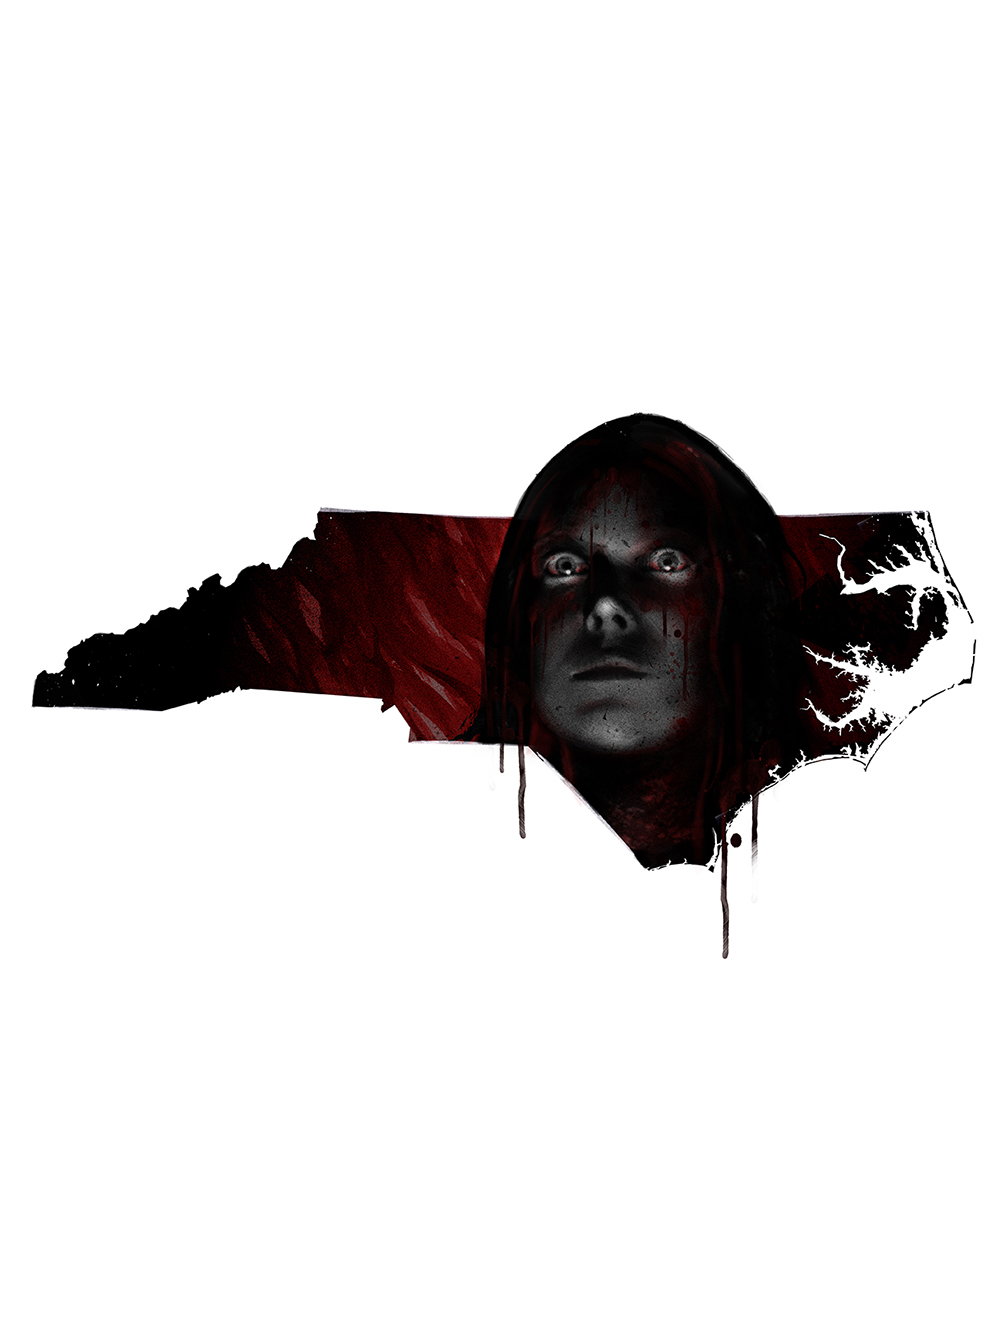 United States of Horror: North Carolina / Carrie